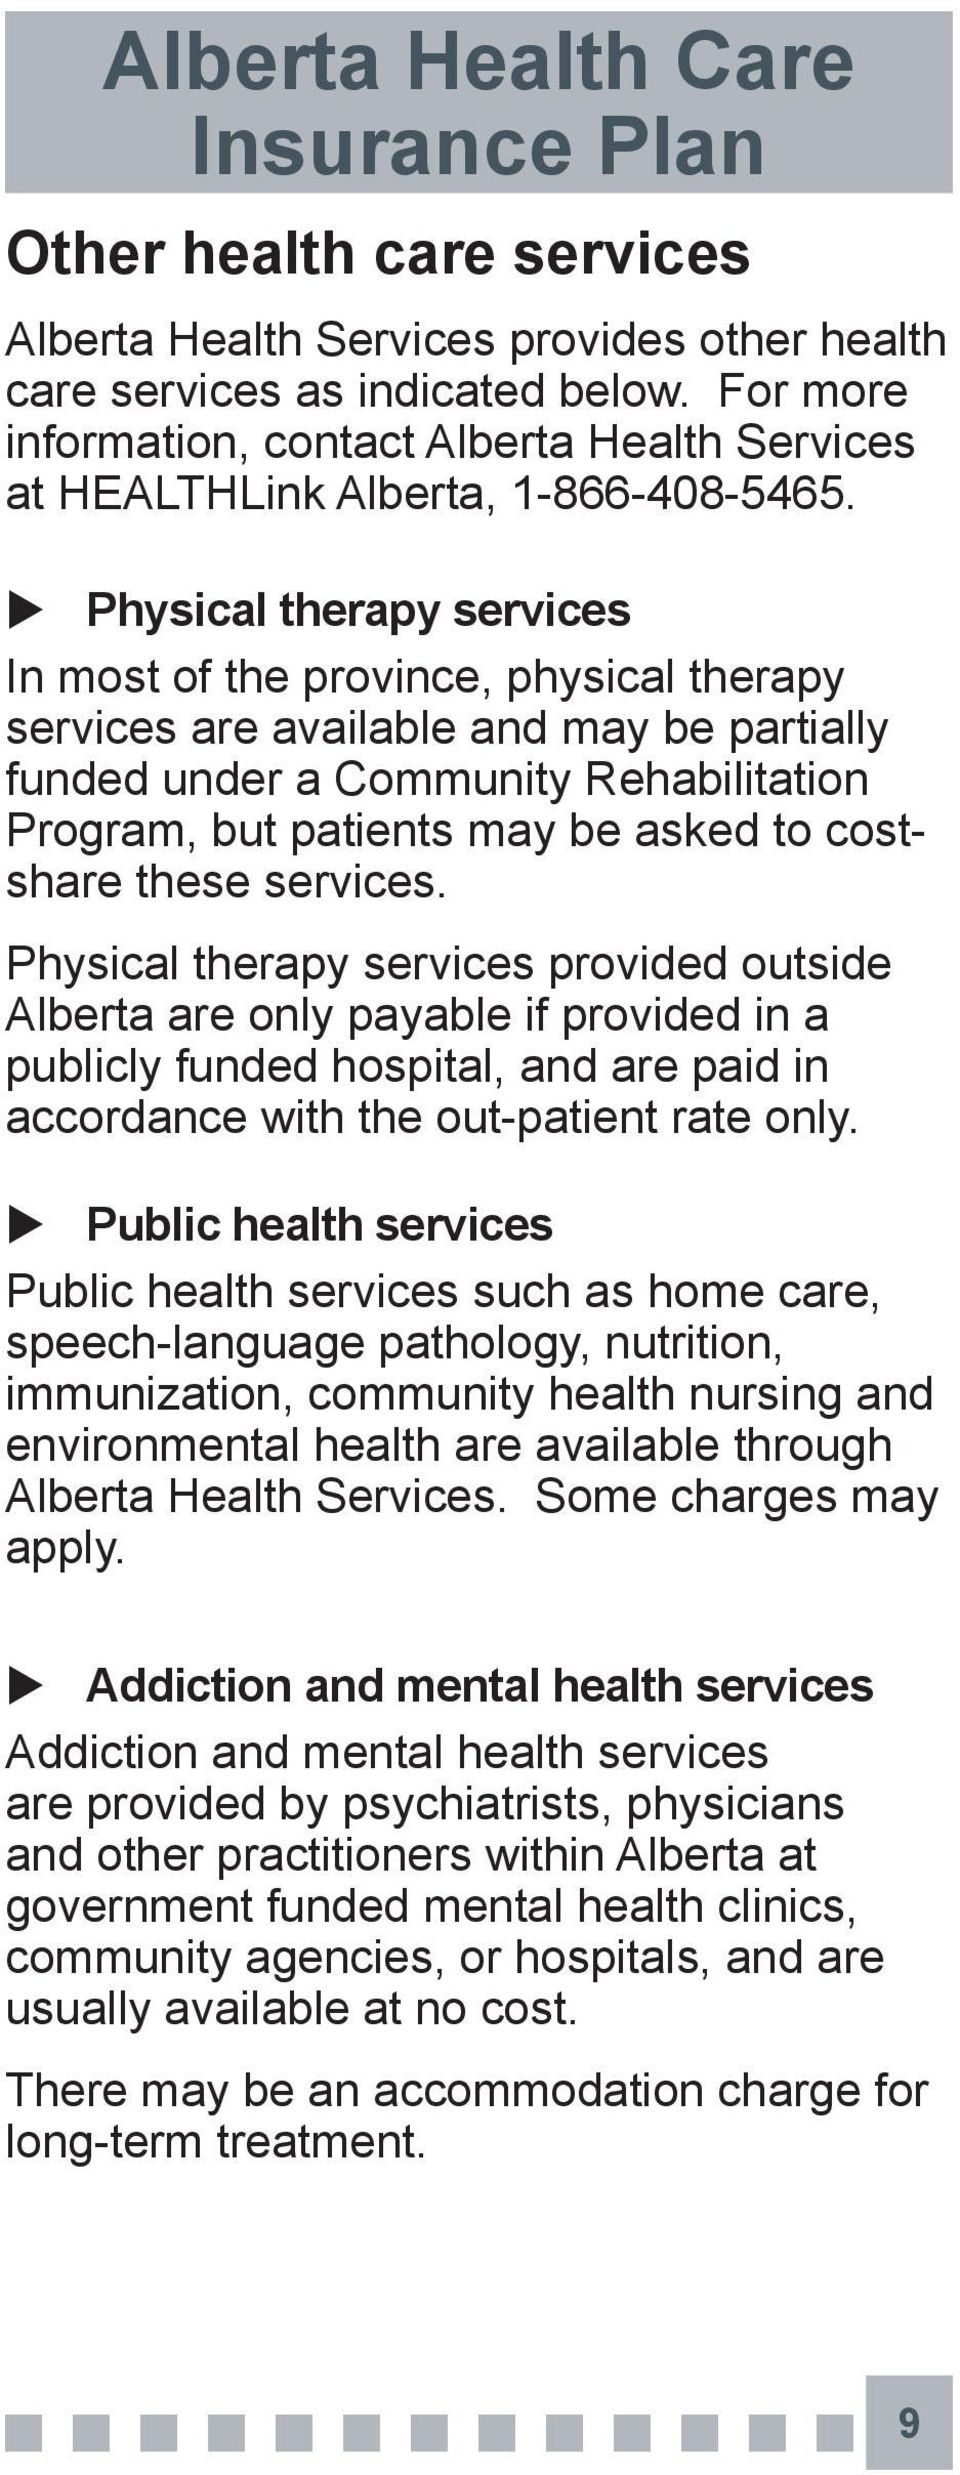 costshare these services. Physical therapy services provided outside Alberta are only payable if provided in a publicly funded hospital, and are paid in accordance with the out-patient rate only.